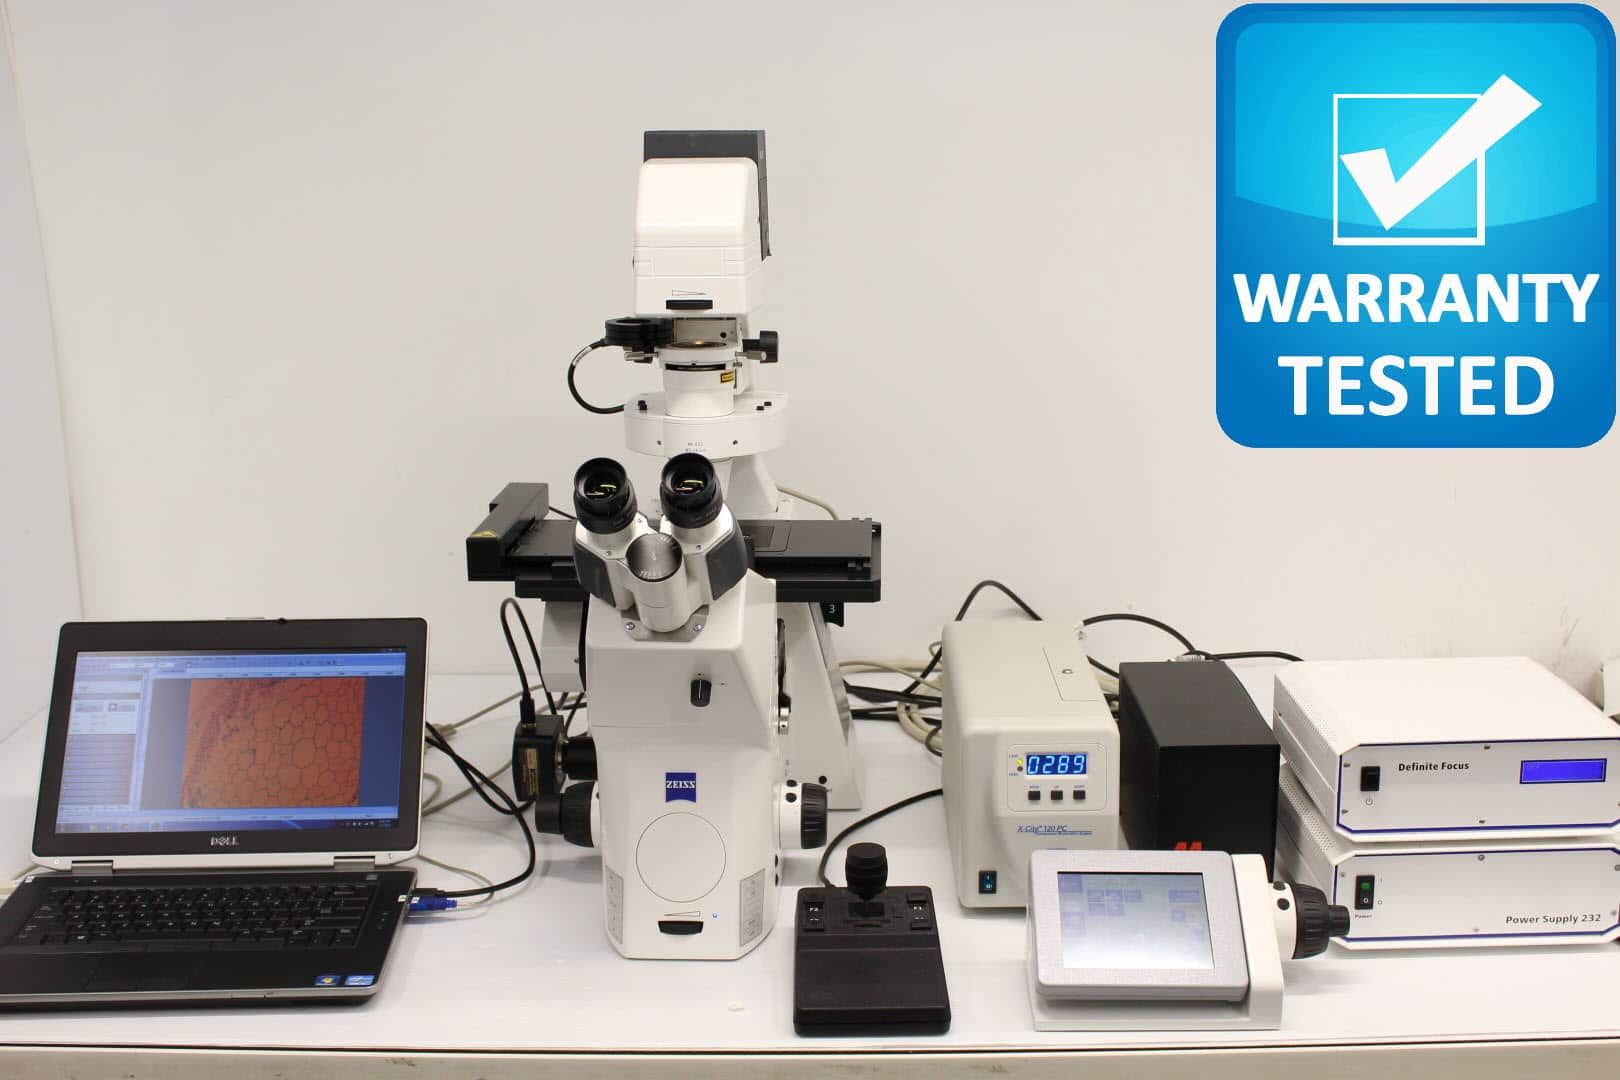 Zeiss Axio Observer.Z1 Fluorescence Motorized Microscope w/ Definite Focus